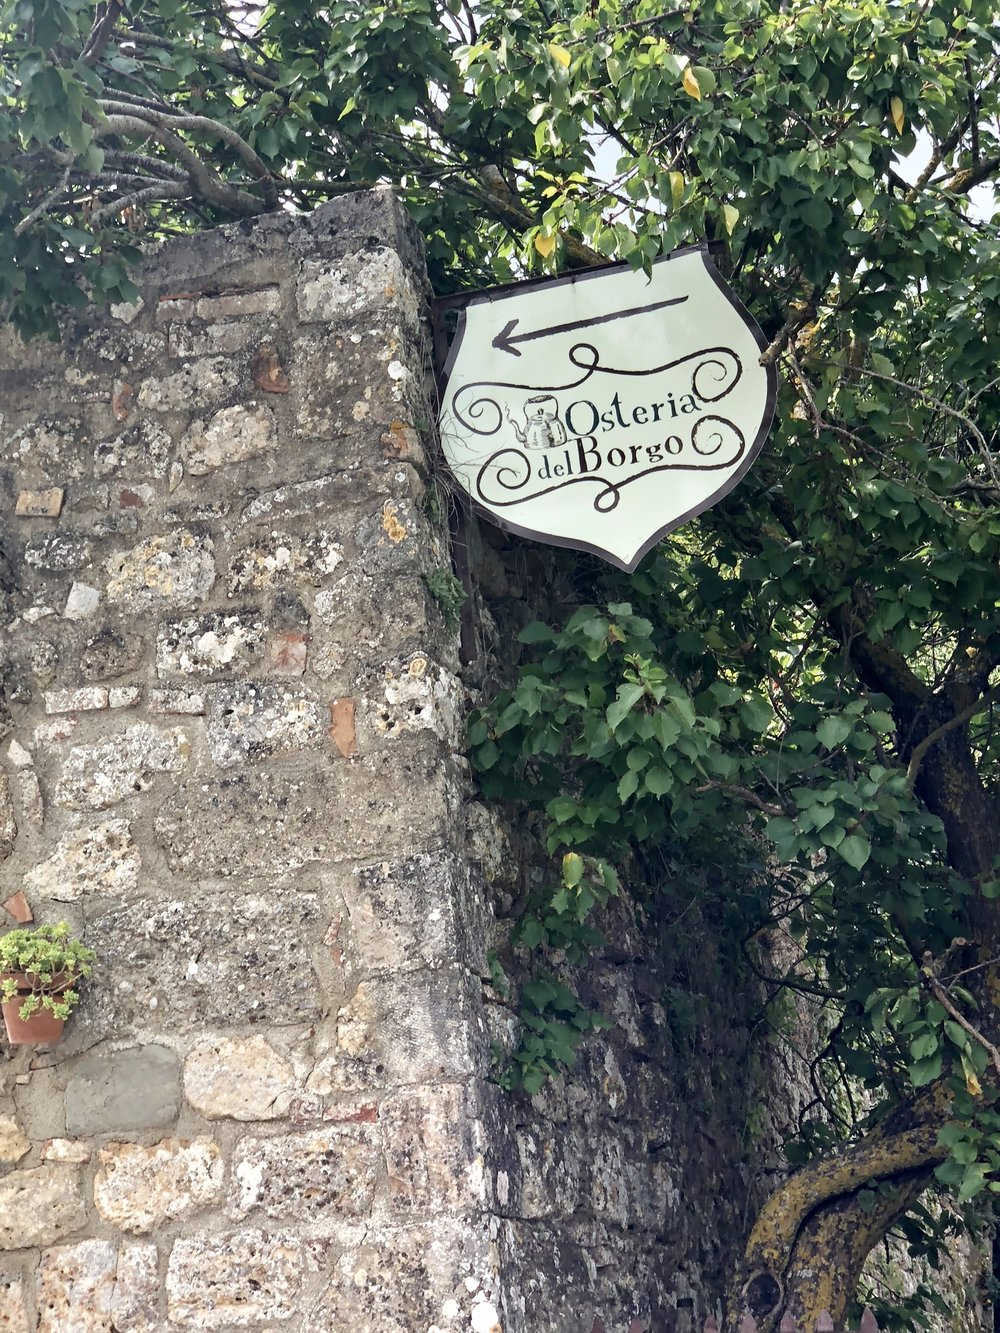 A sign for Osteria del Borgo in the village of Mensano.